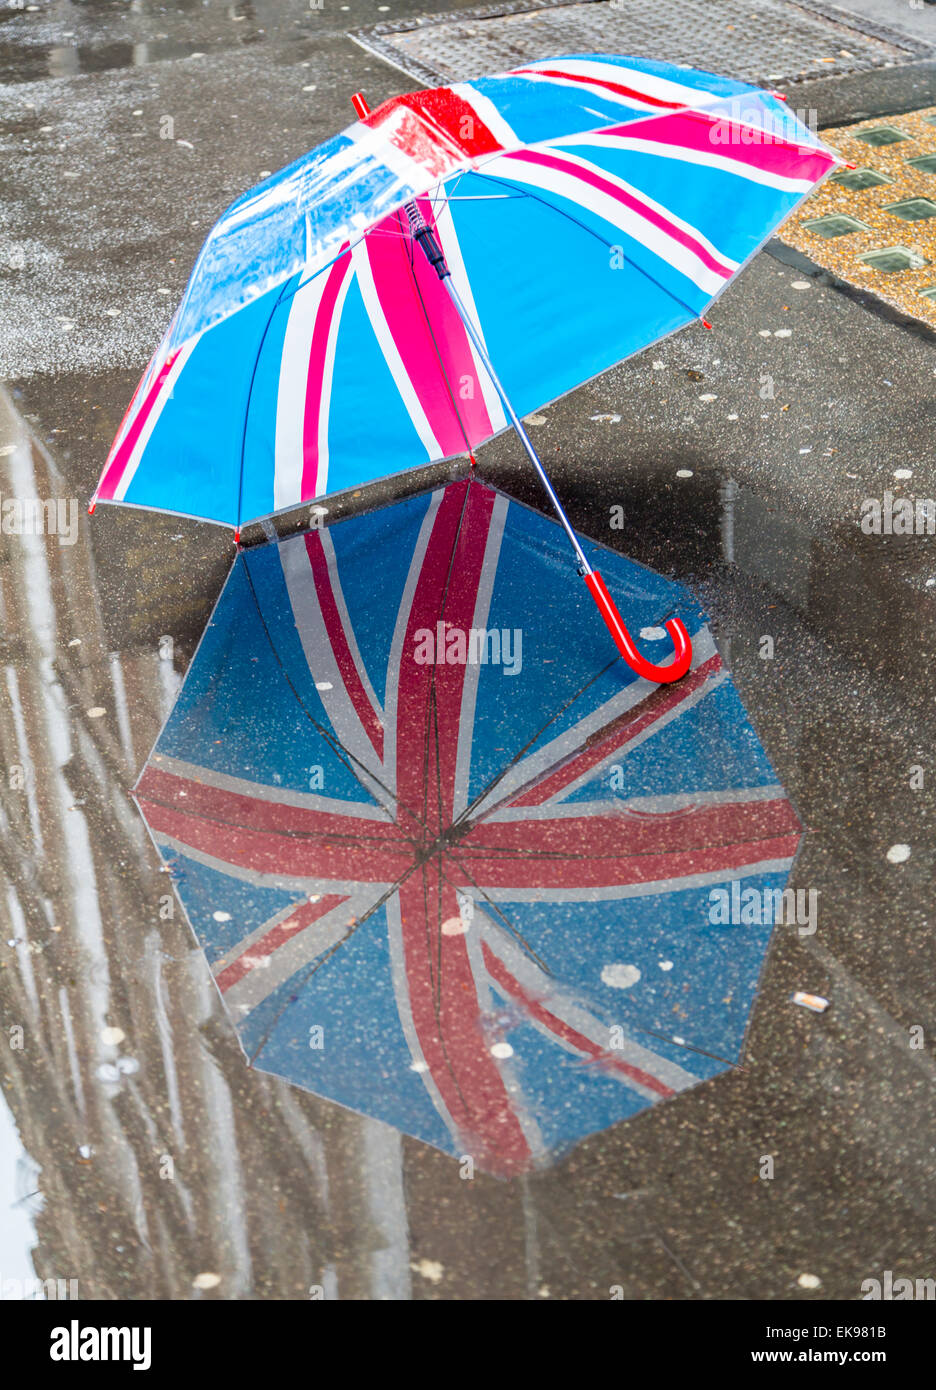 A Union Jack umbrella reflection in a puddle in a raining London Street - Stock Image